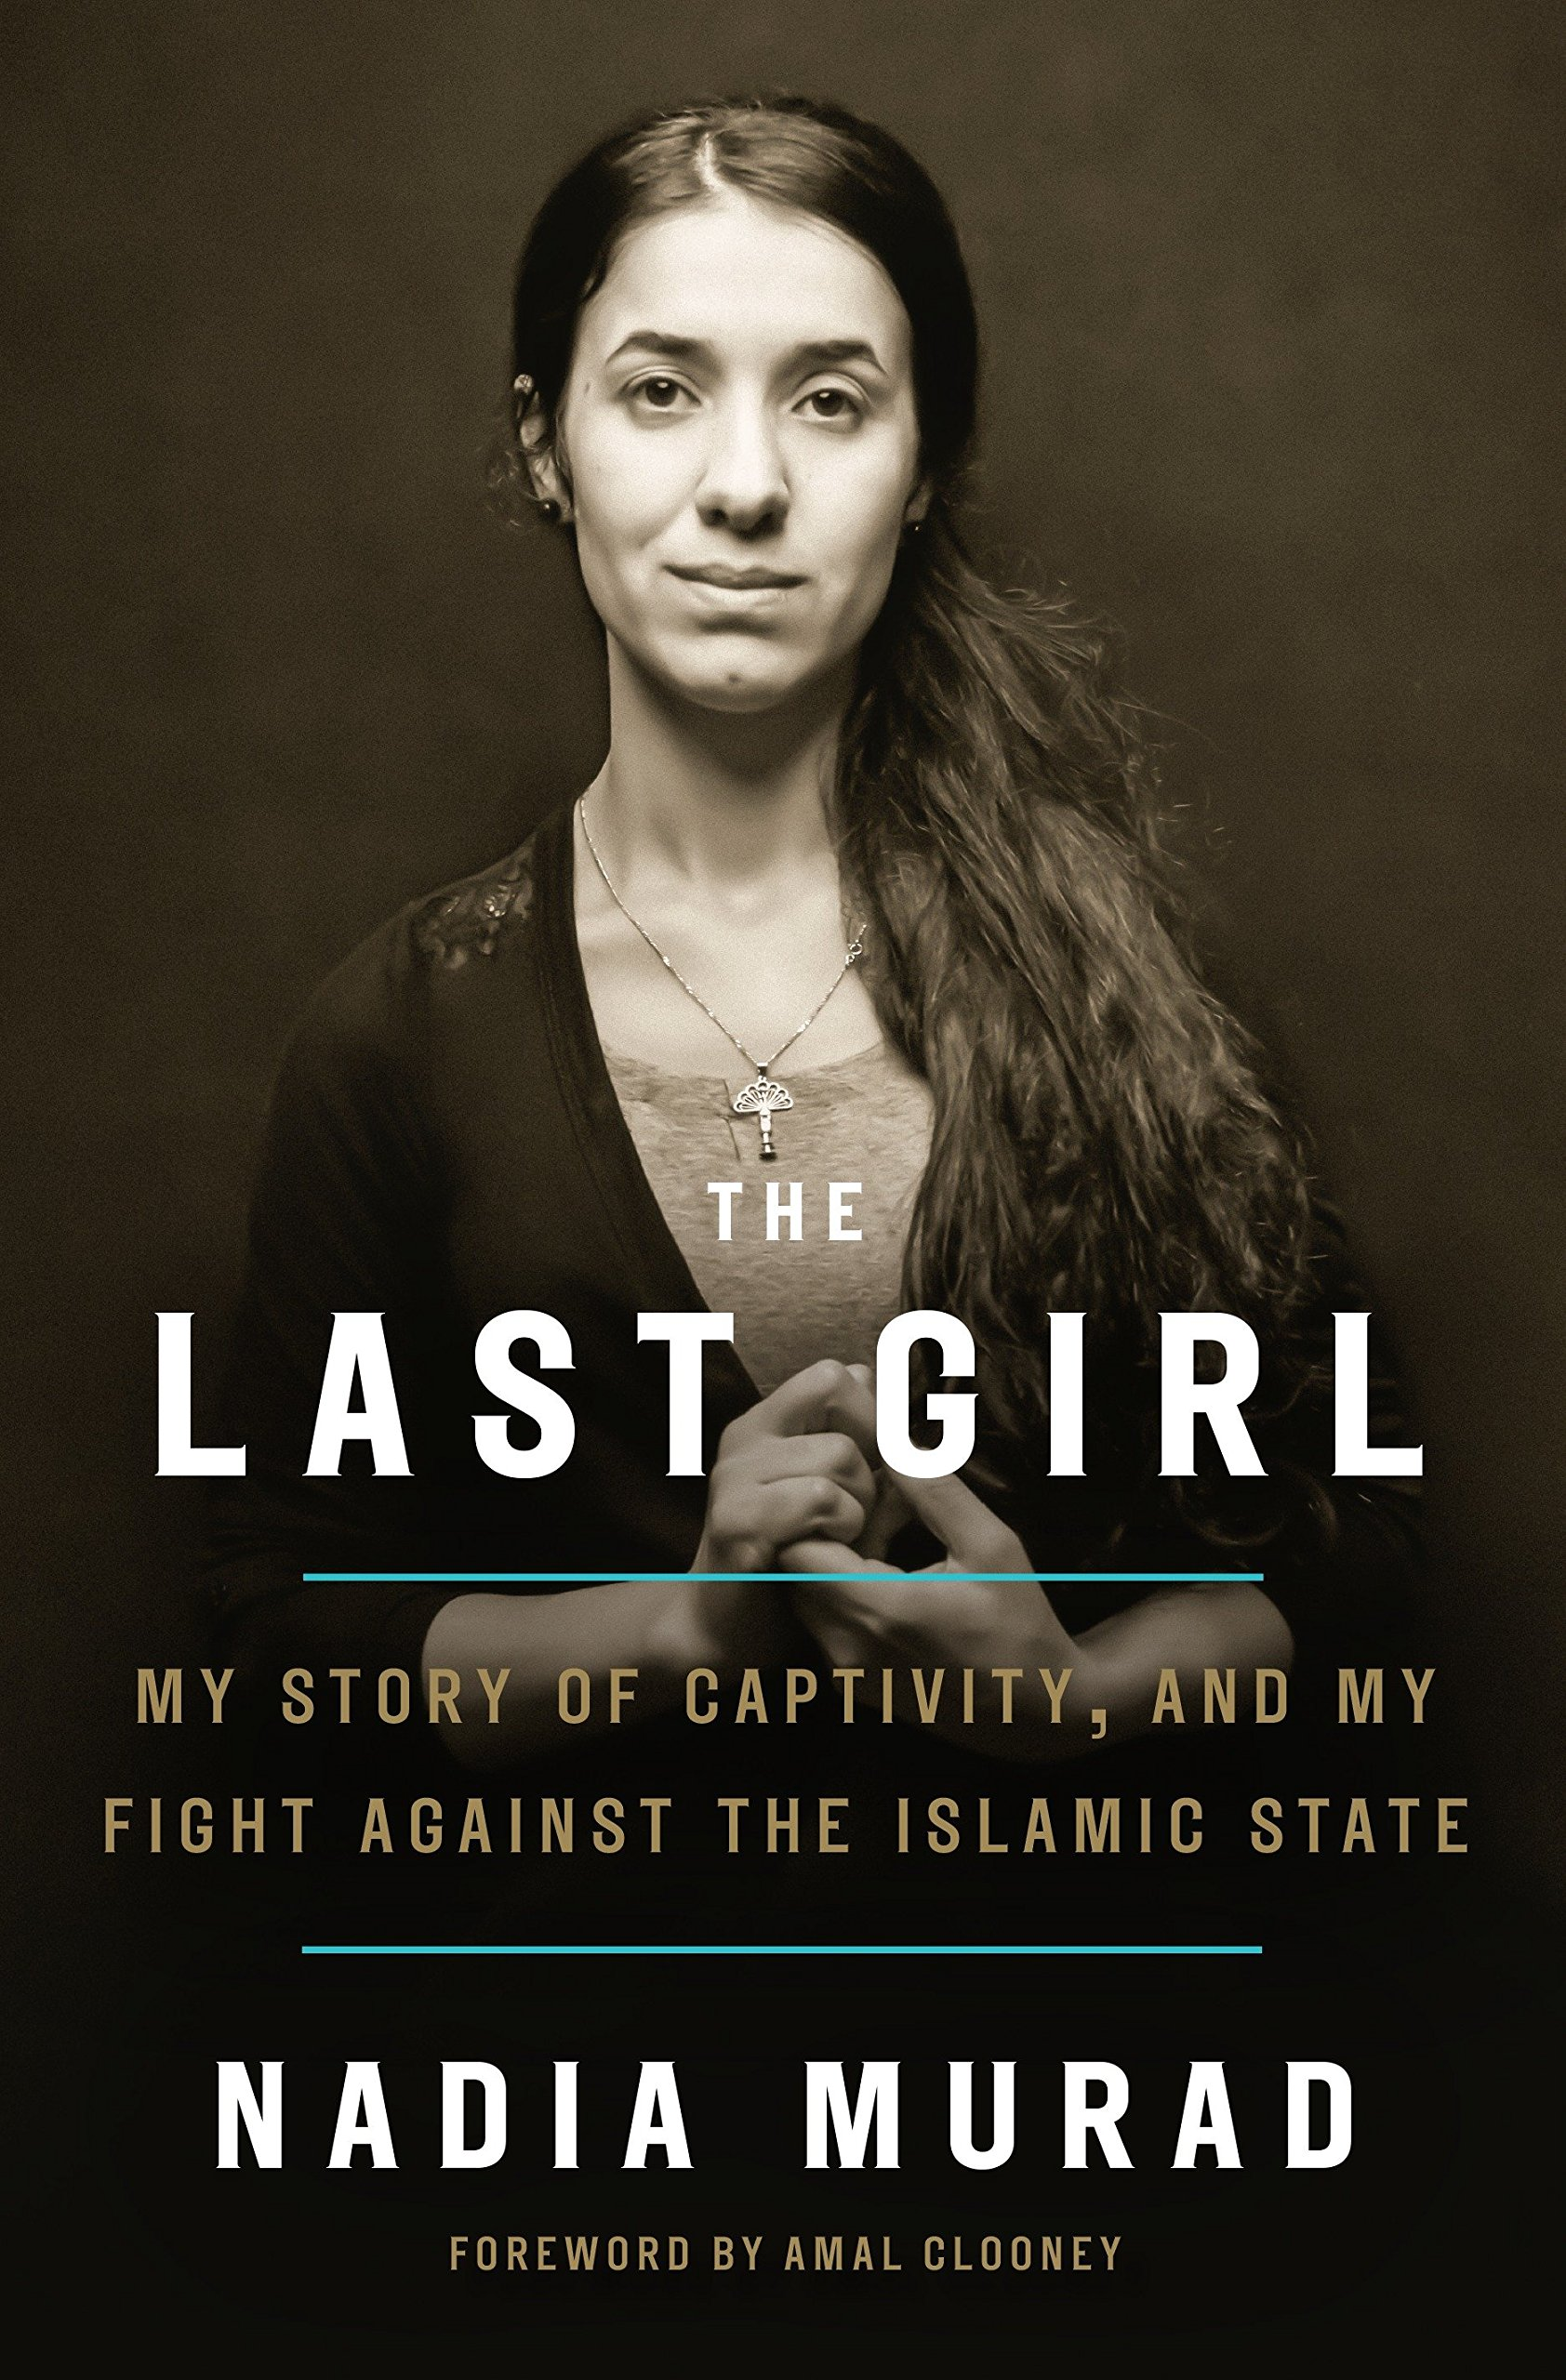 My Story of Captivity, and My Fight Against the Islamic State